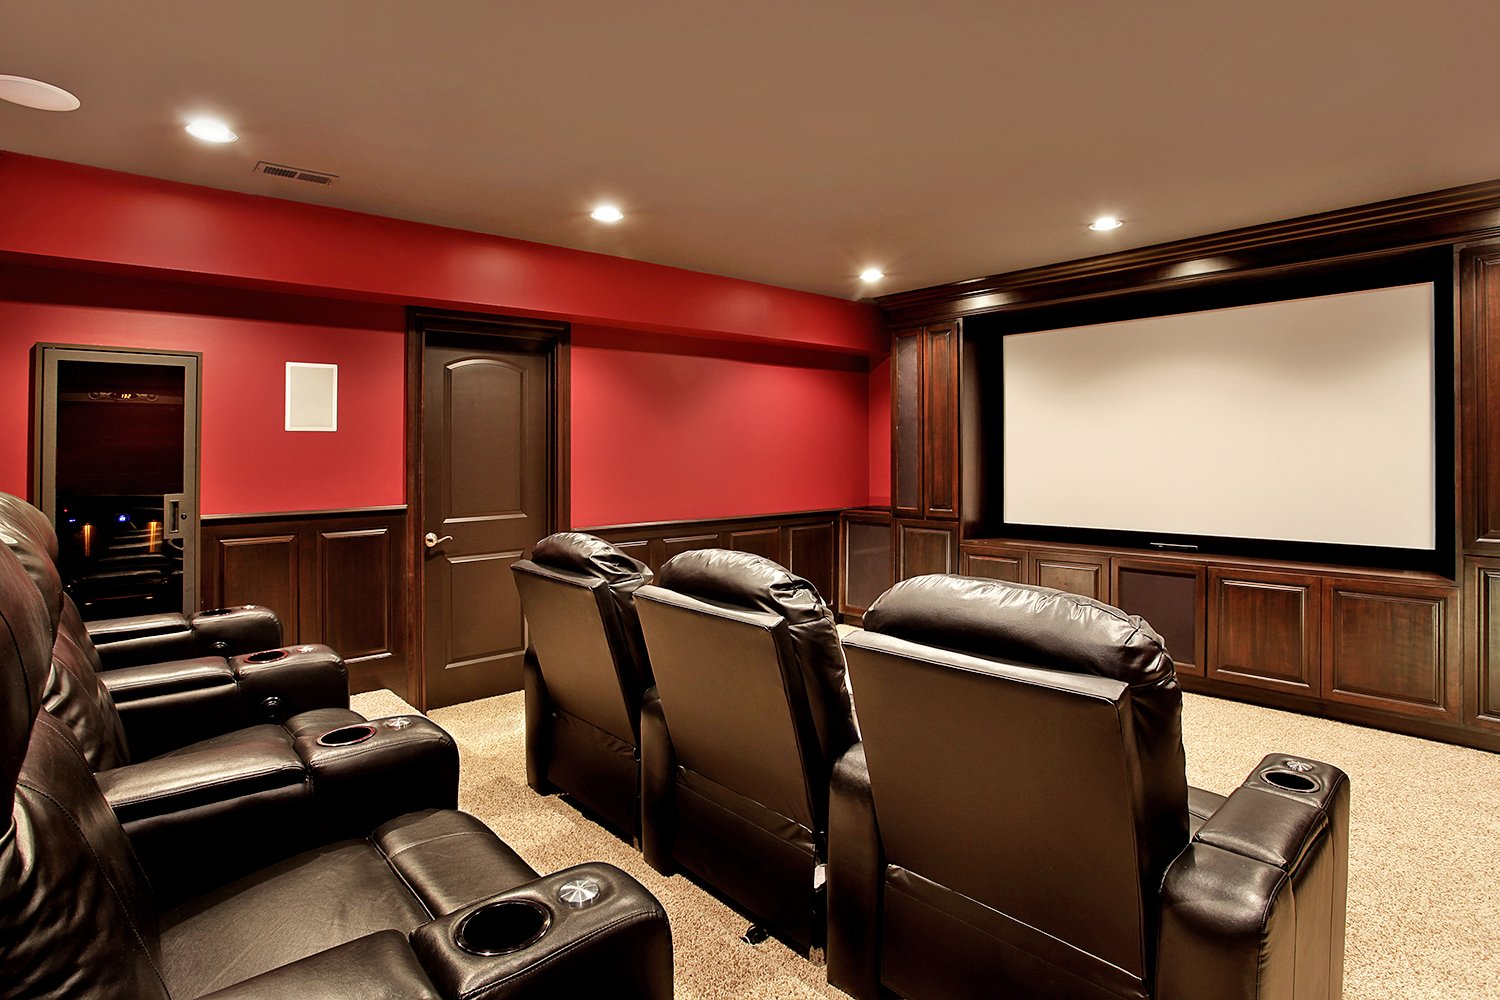 The Ultimate Guide on Home Theater Installation: Tips for Installing By Yourself